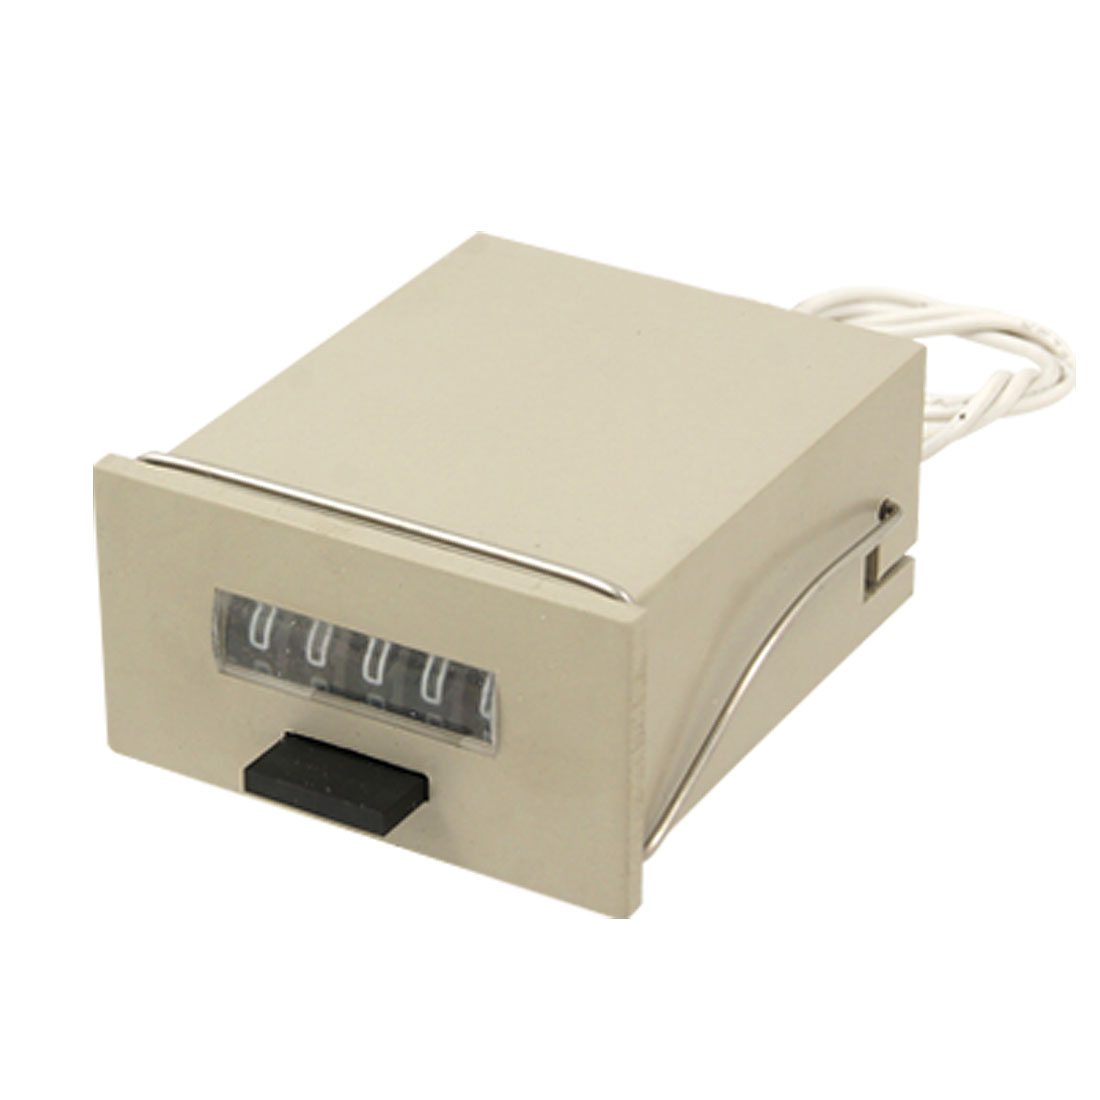 AC 220V E-15U Roller Register Electromagnetic Counter